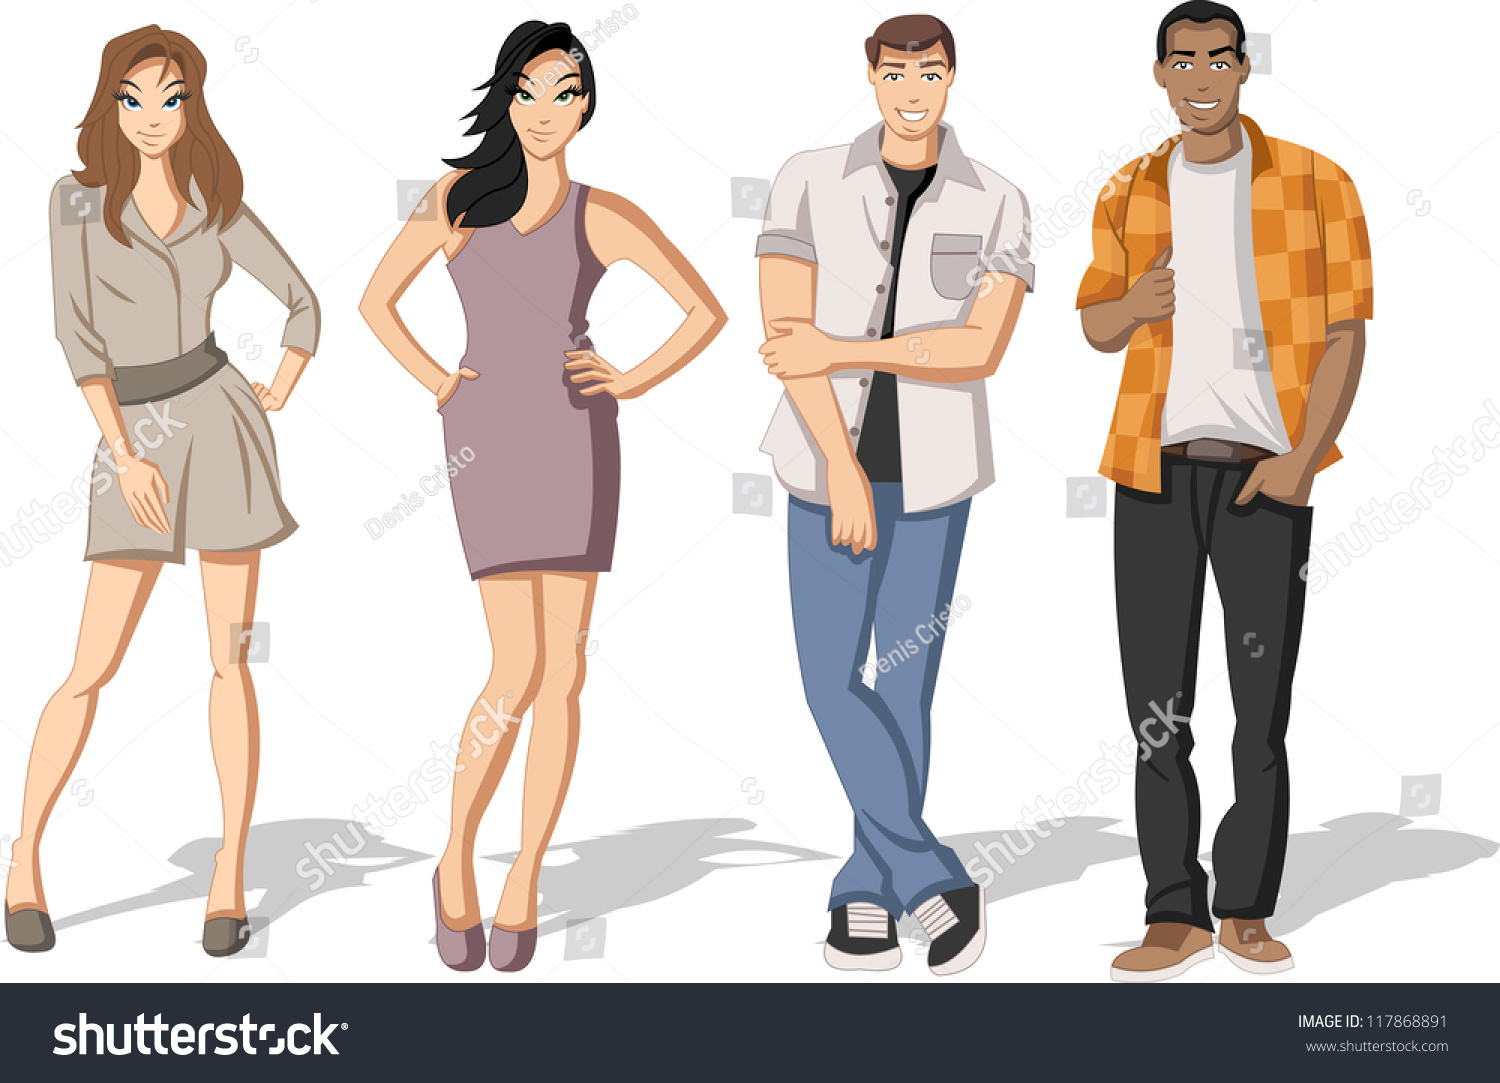 Group Fashion Cartoon Young People Teenagers Stock Vector 117868891 Shutterstock